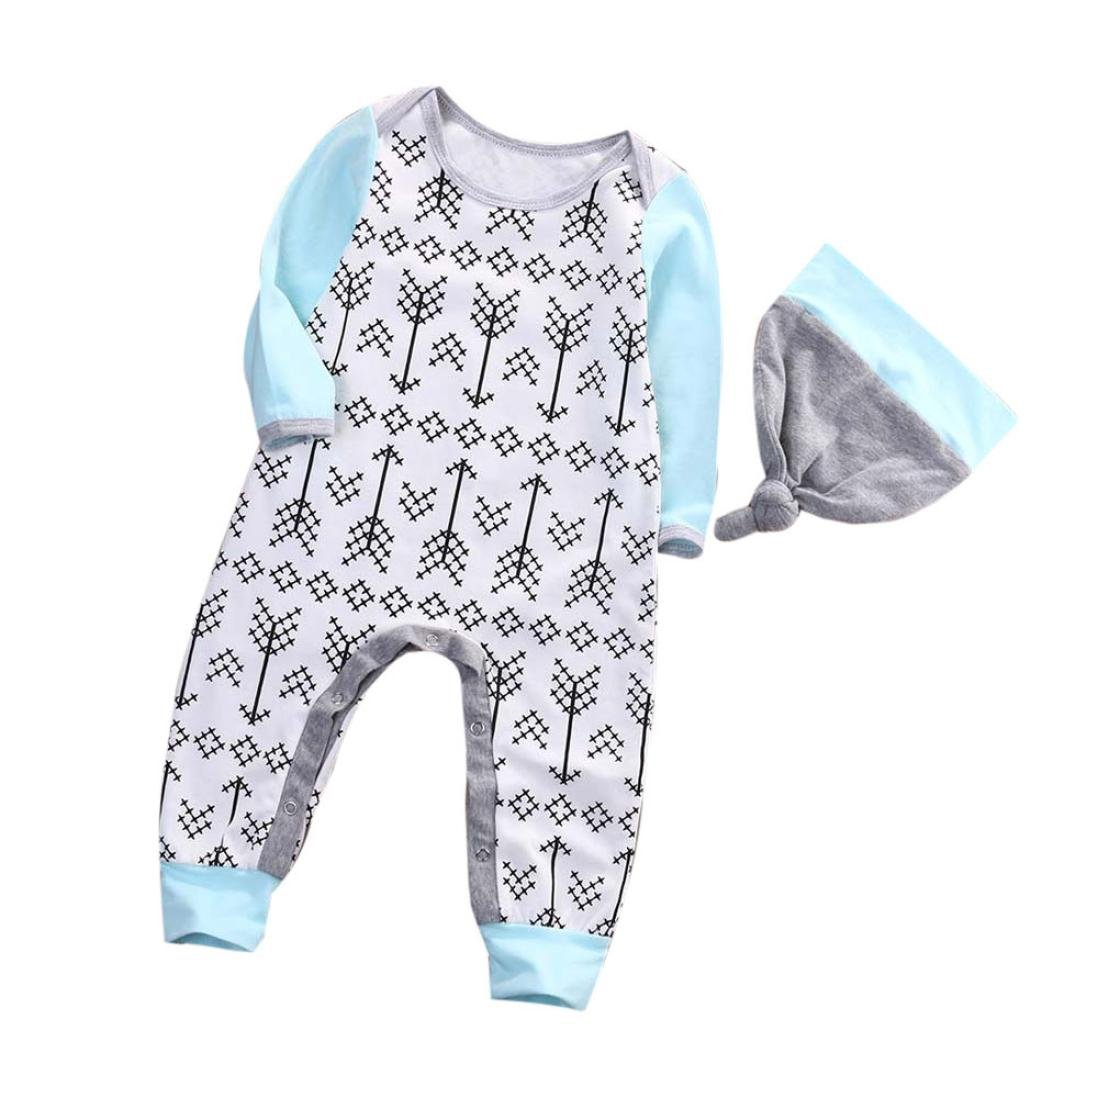 LUNIWEI Newborn Infant Baby Boy Girl Bodysuit Romper Jumpsuit Hat Outfits